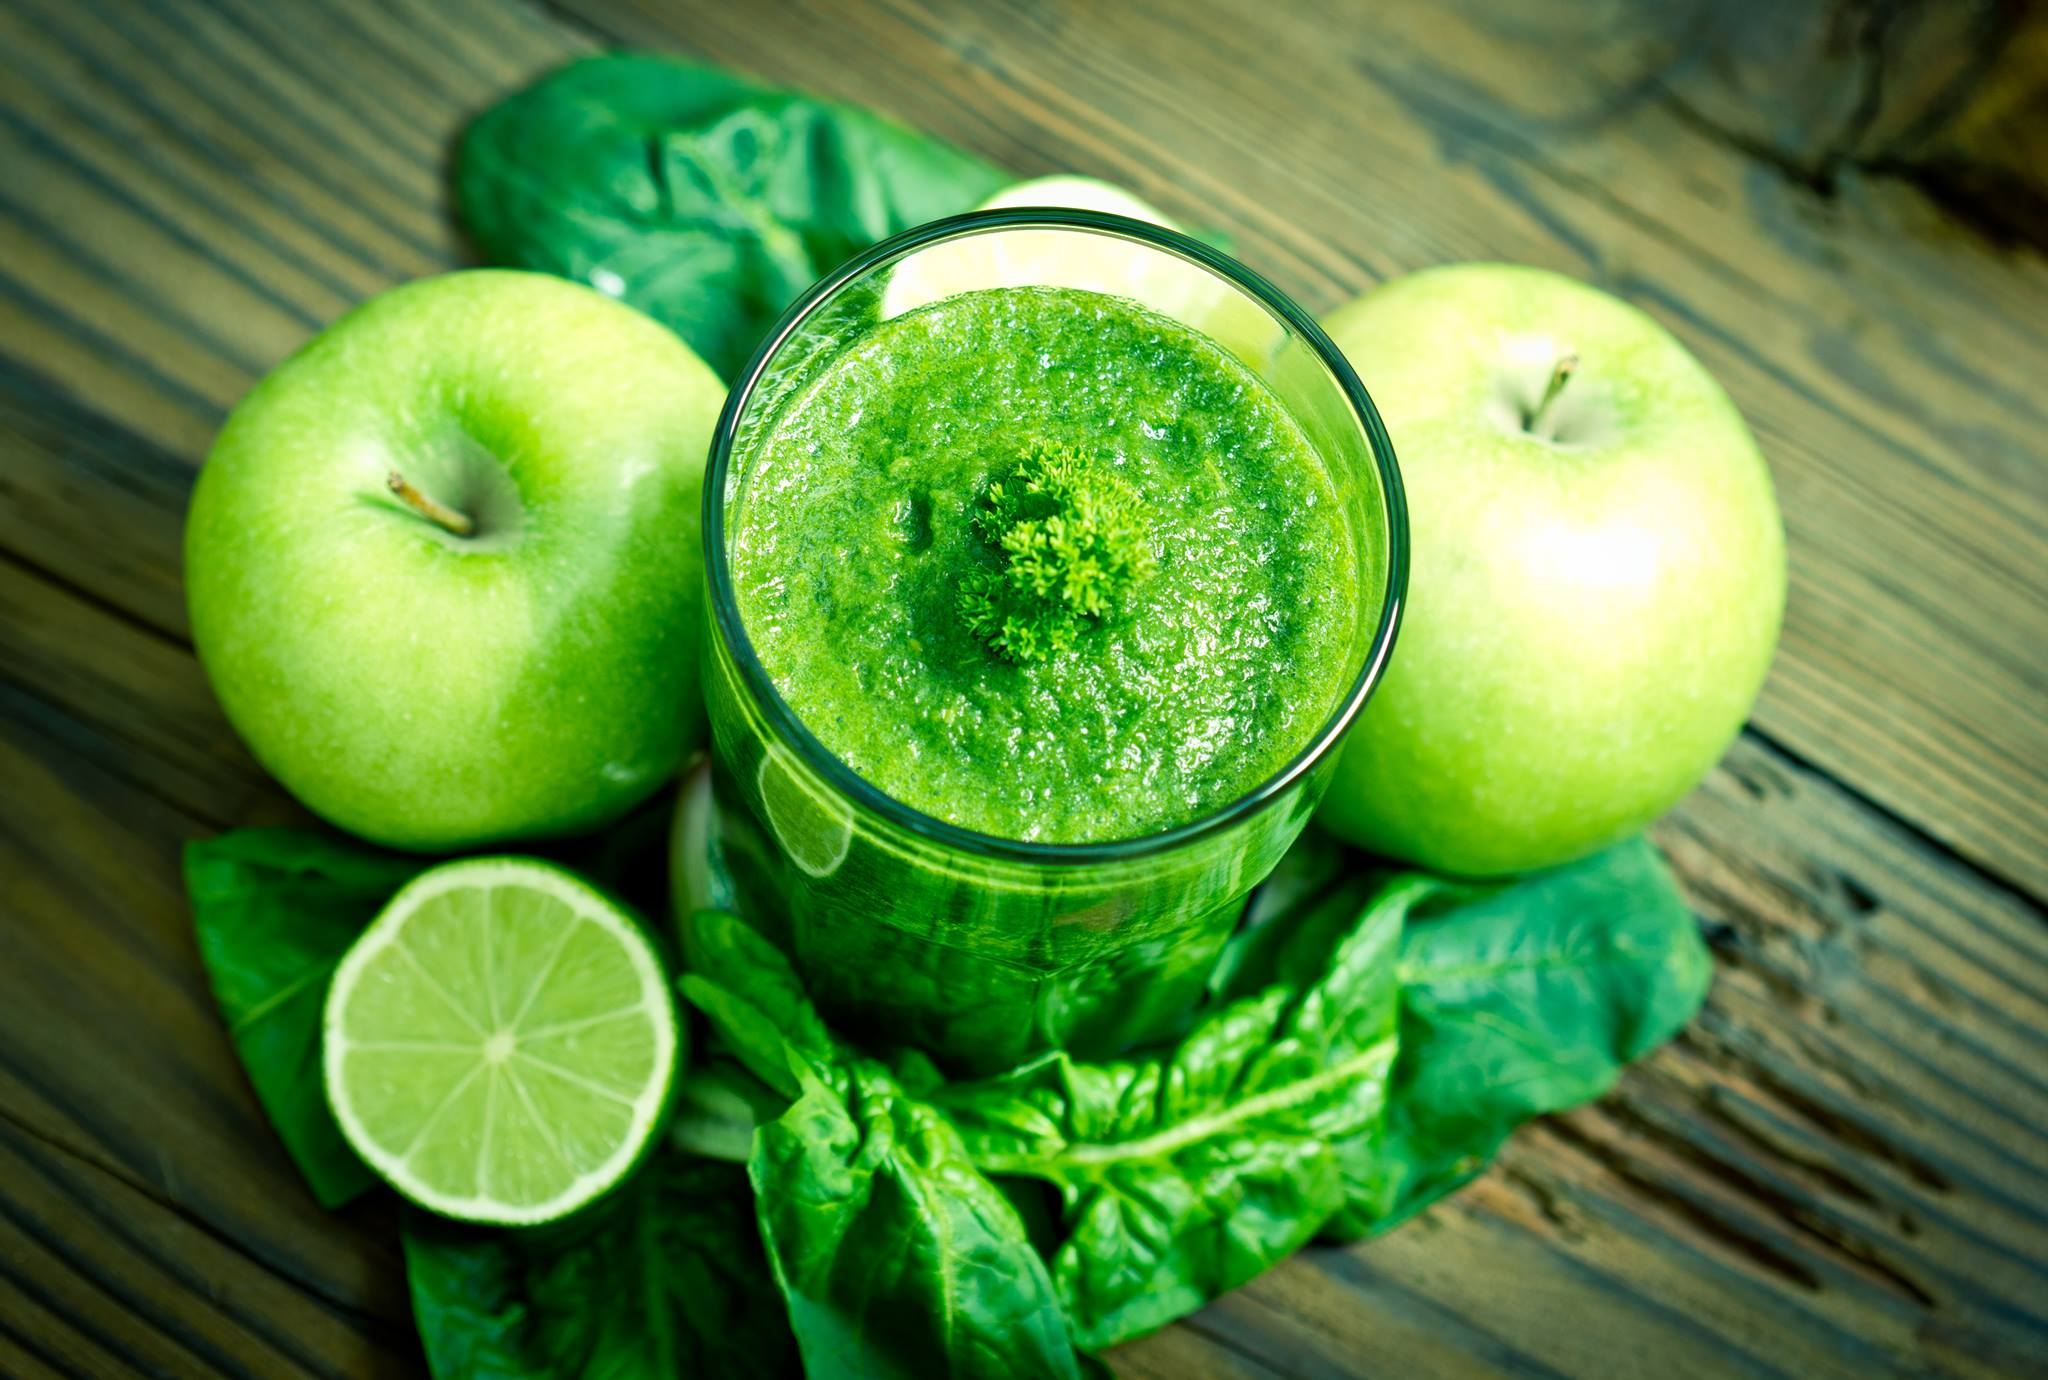 Urban Quench Green Meanie Fruit Vegetable Smoothie